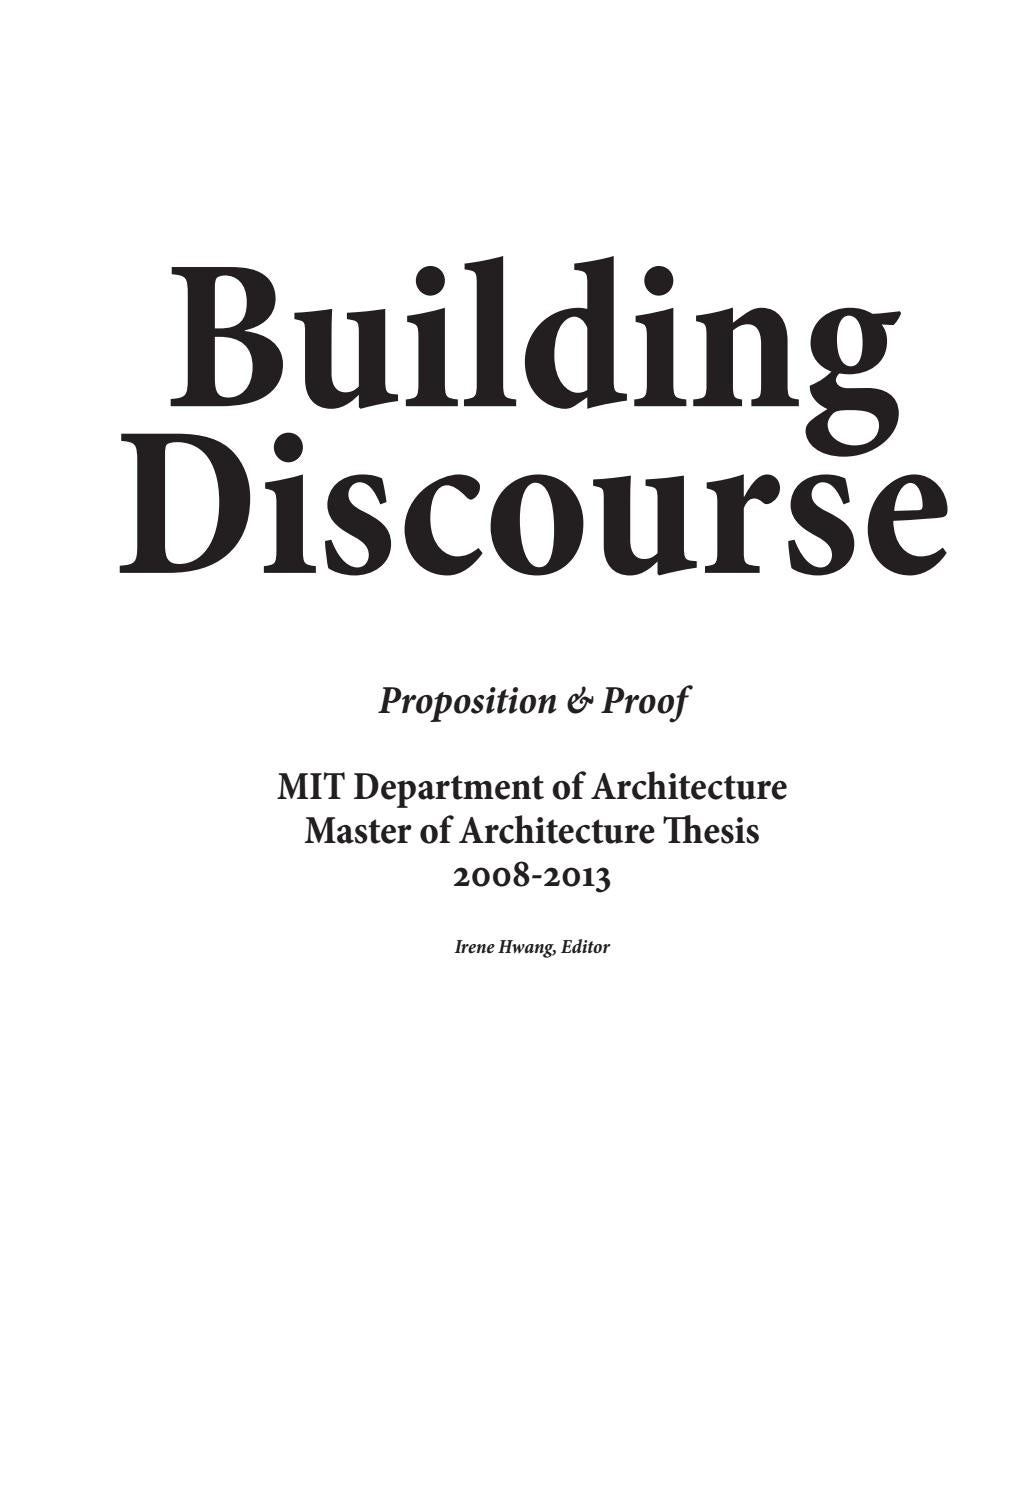 Building Discourse March Thesis Projects 2008 2013 By Mit Series Parallel Circuit Likewise Carbon Resistor Lab Further Architecture Issuu